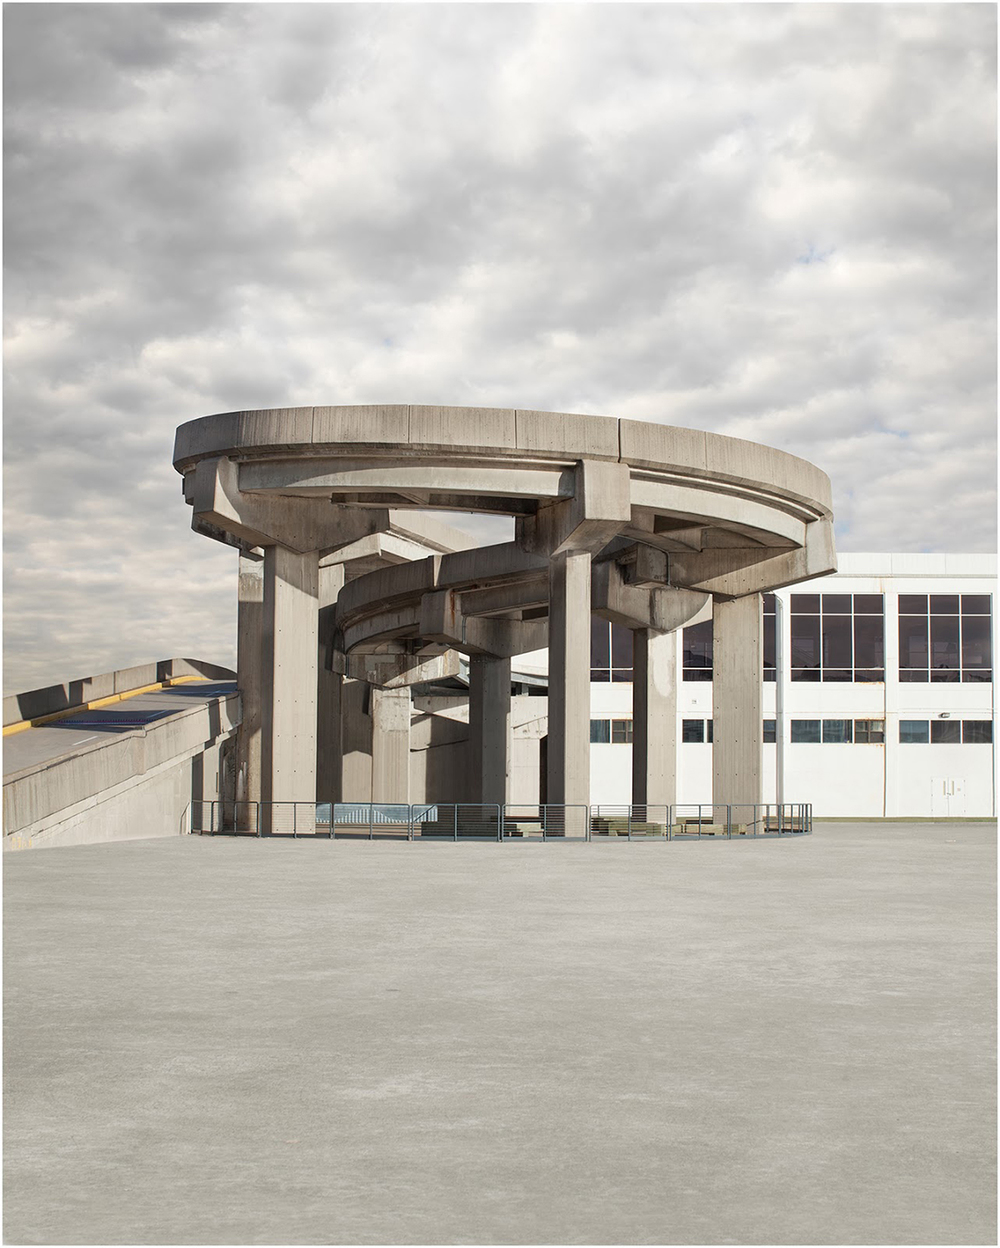 David Manley, Spiral Cement Structure, 2014